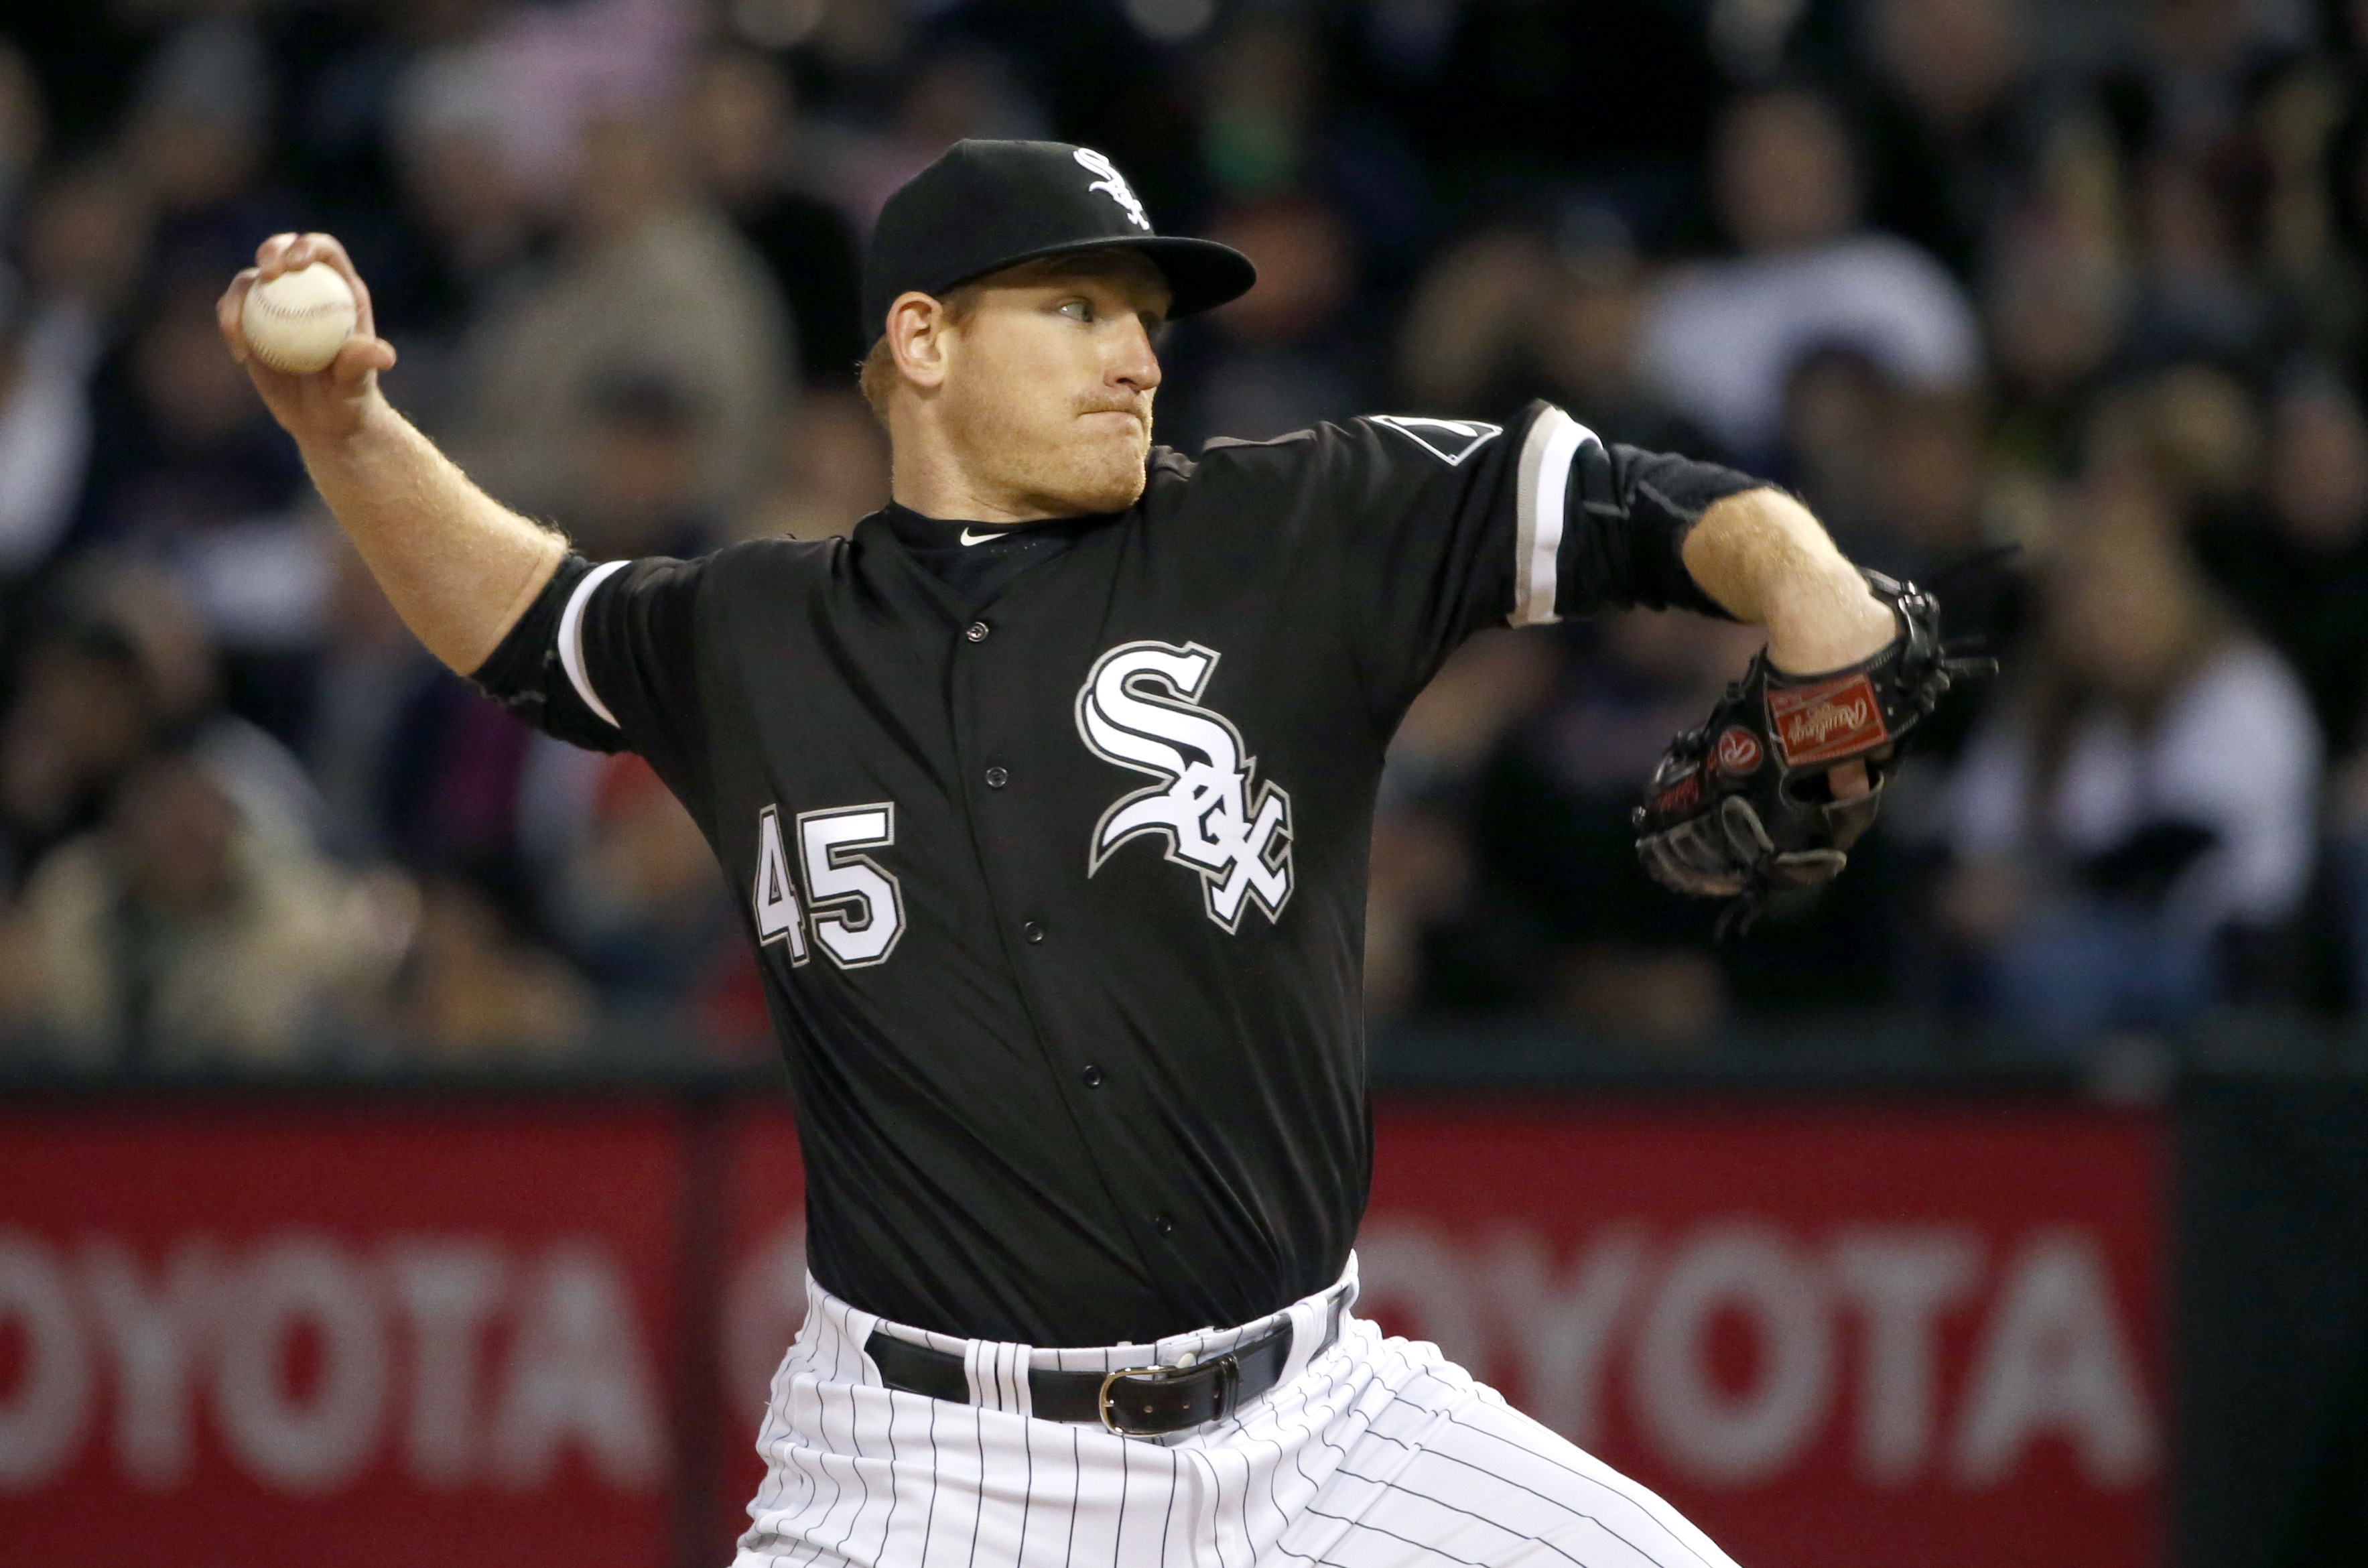 Chicago White Sox starting pitcher Erik Johnson delivers during the third inning of a baseball game against the Boston Red Sox Thursday, May 5, 2016, in Chicago. (AP Photo/Charles Rex Arbogast)